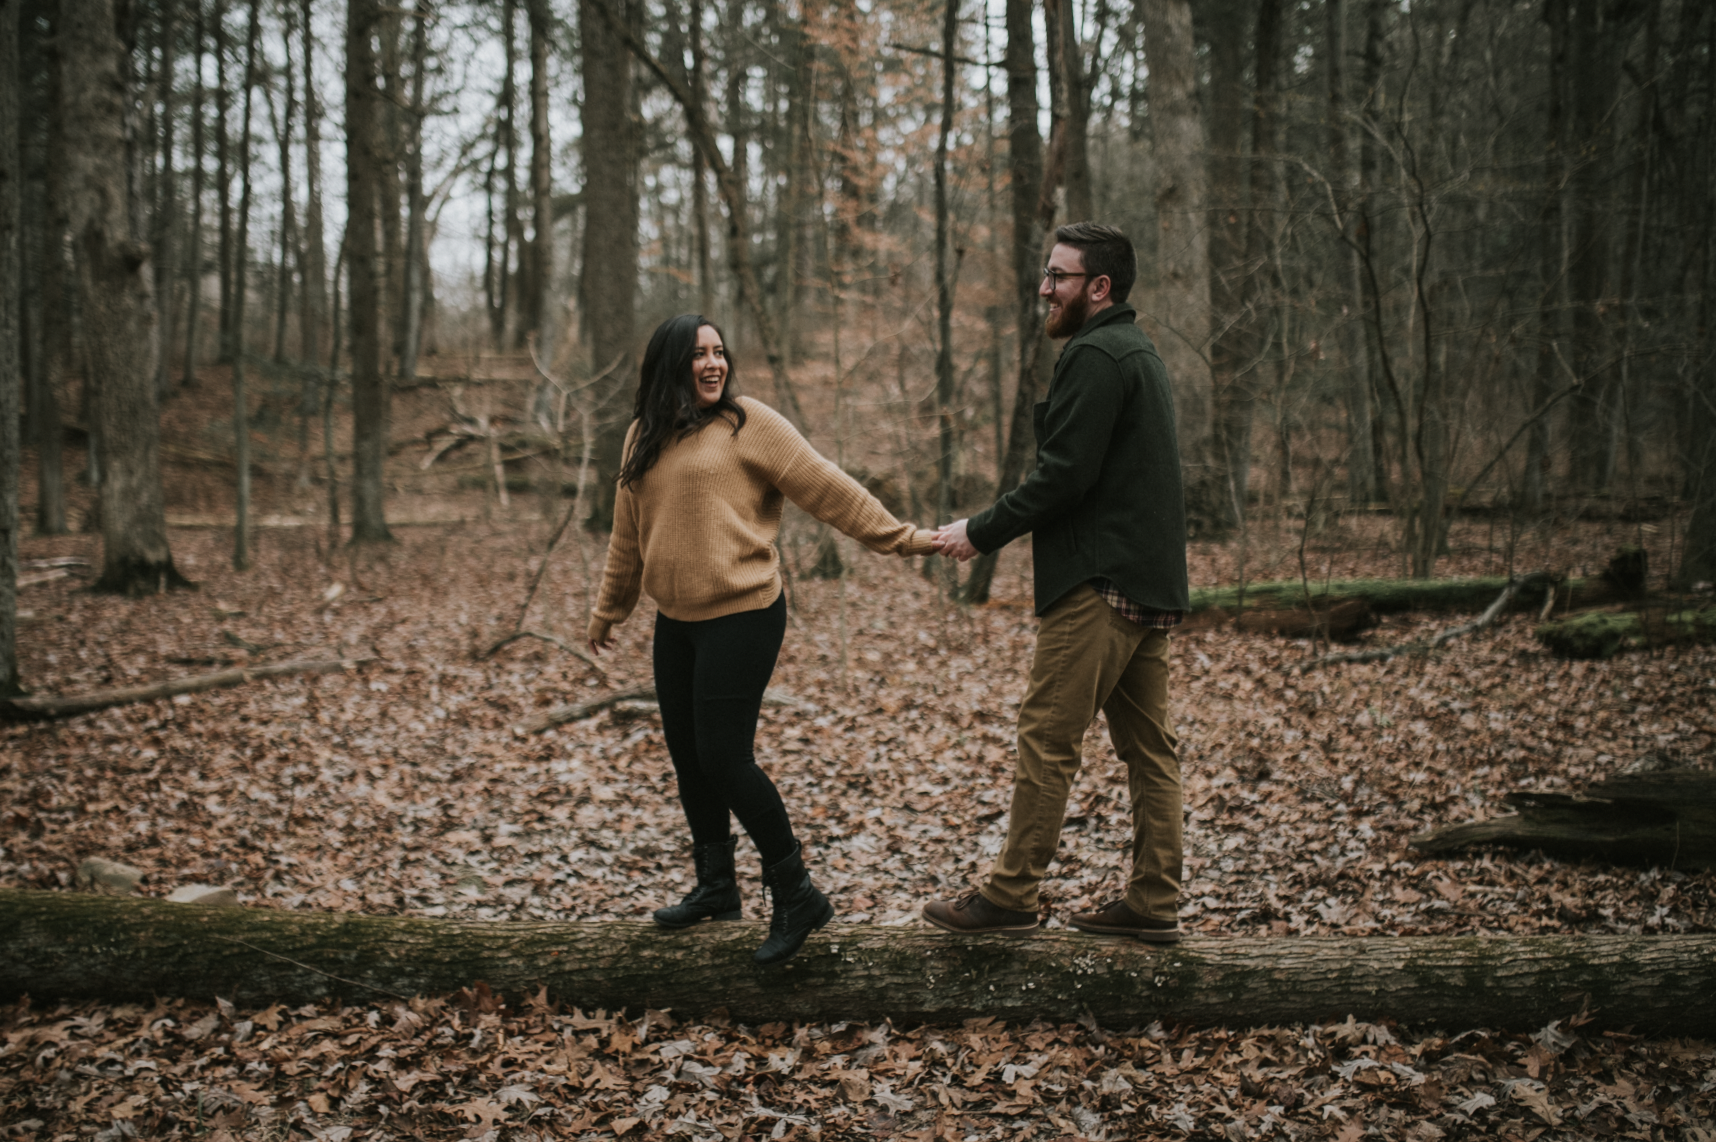 matt-natalia-winter-woods-engagement-session-pennsylvania-wedding-photographer-16